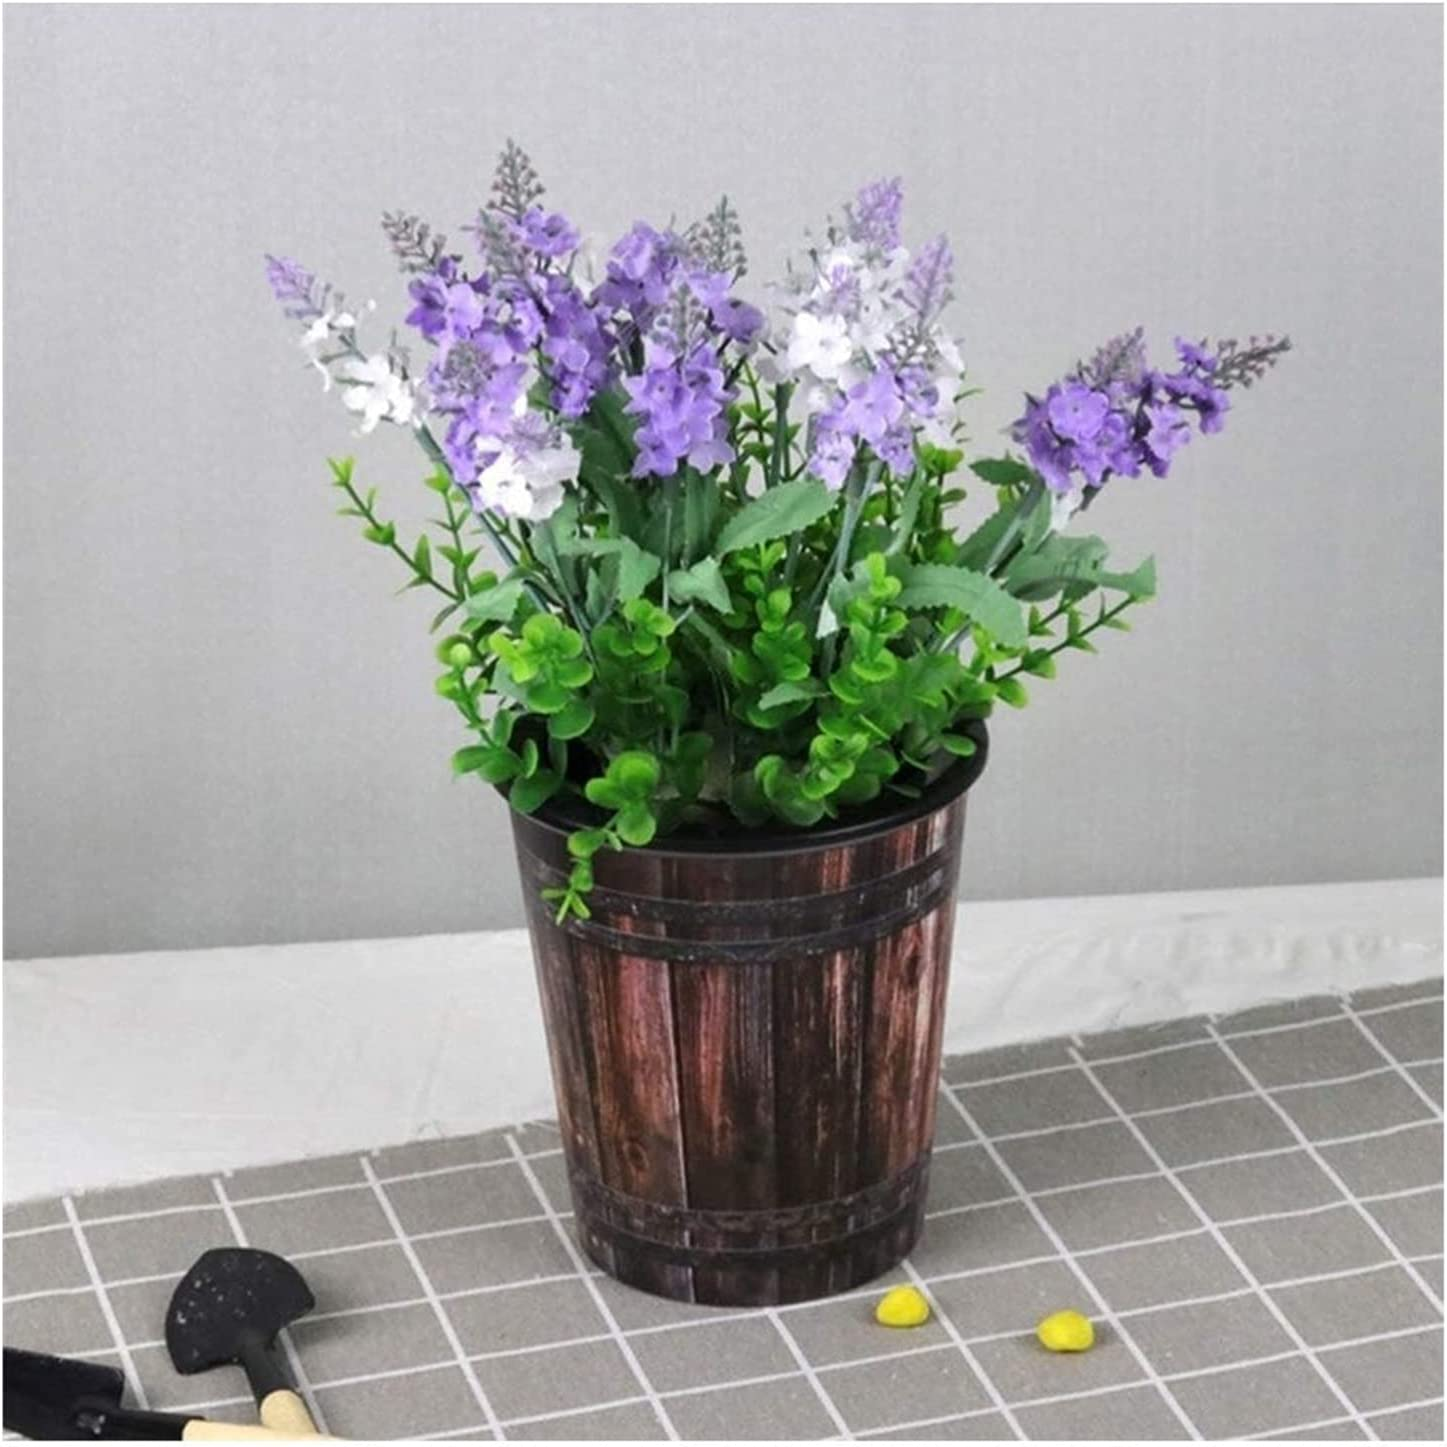 WZHONG In a popularity 2PCS Flower Pots Tampa Mall Contemporary Balco Out Indoor Poly-Resin